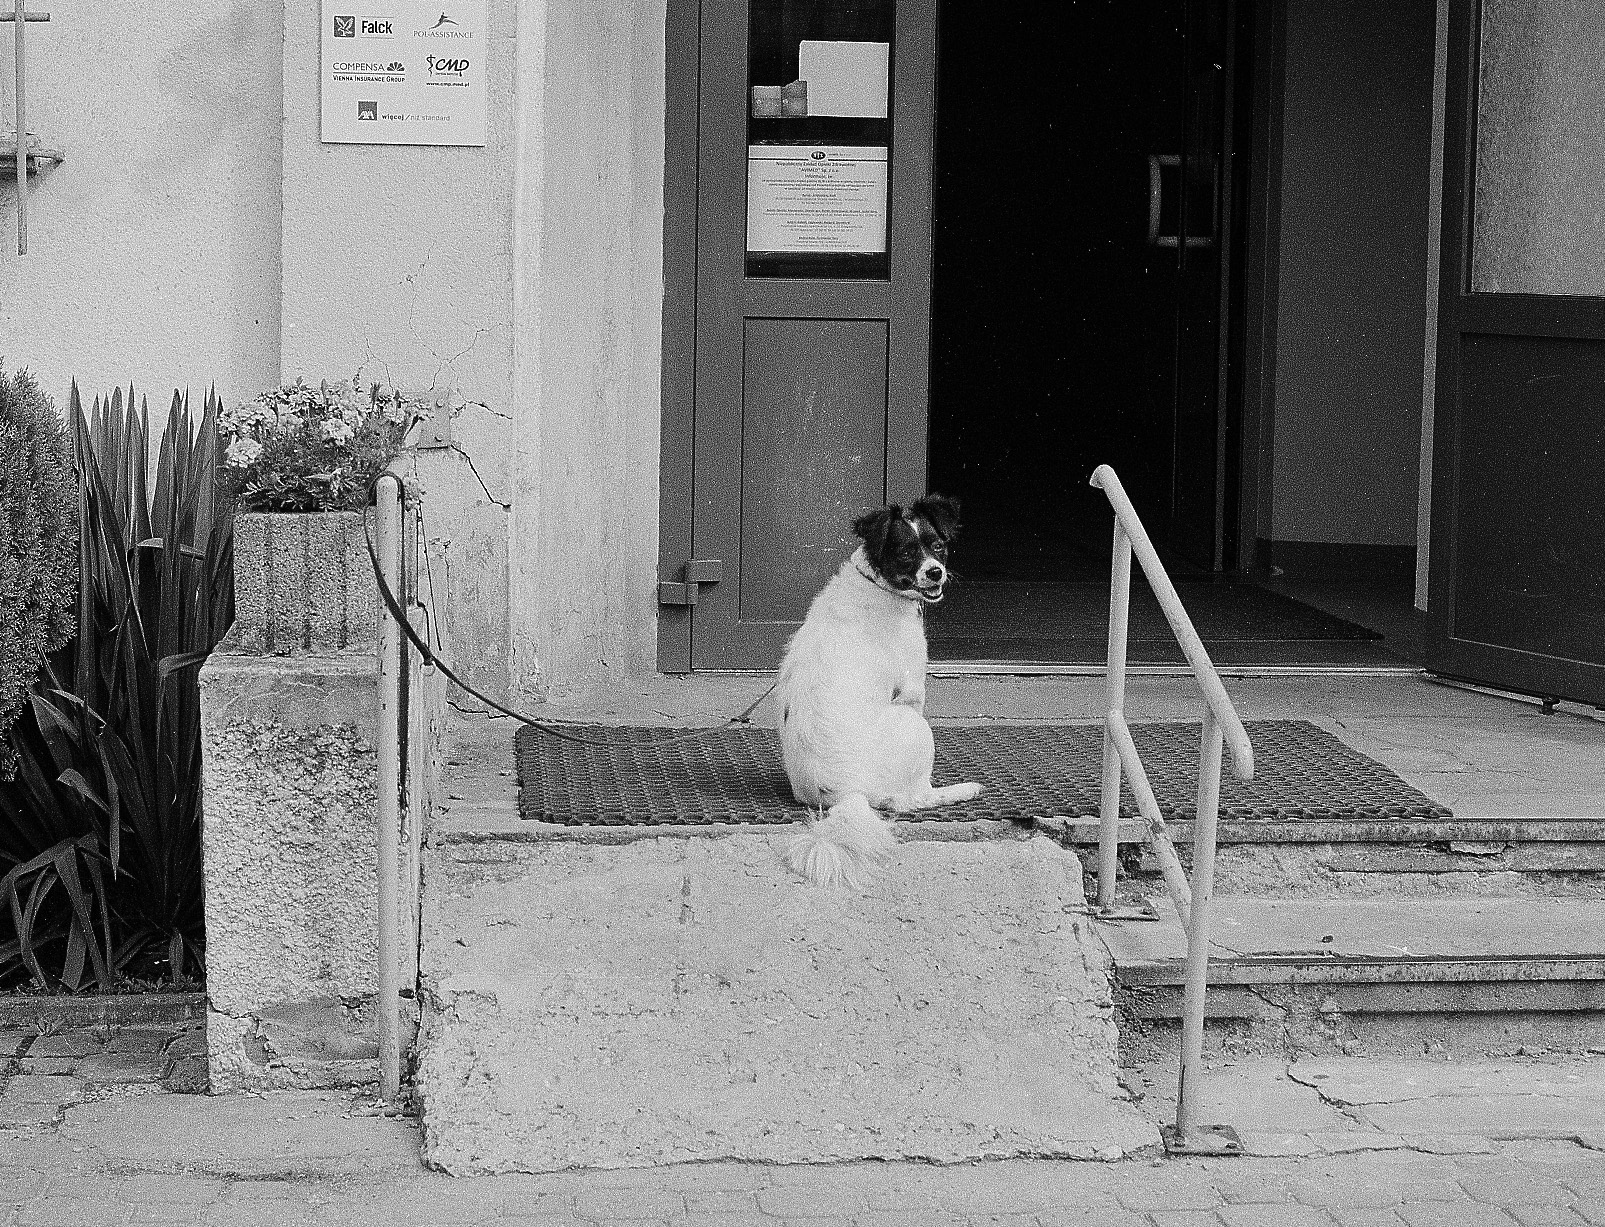 Waiting Dogs Natalia Poniatowska